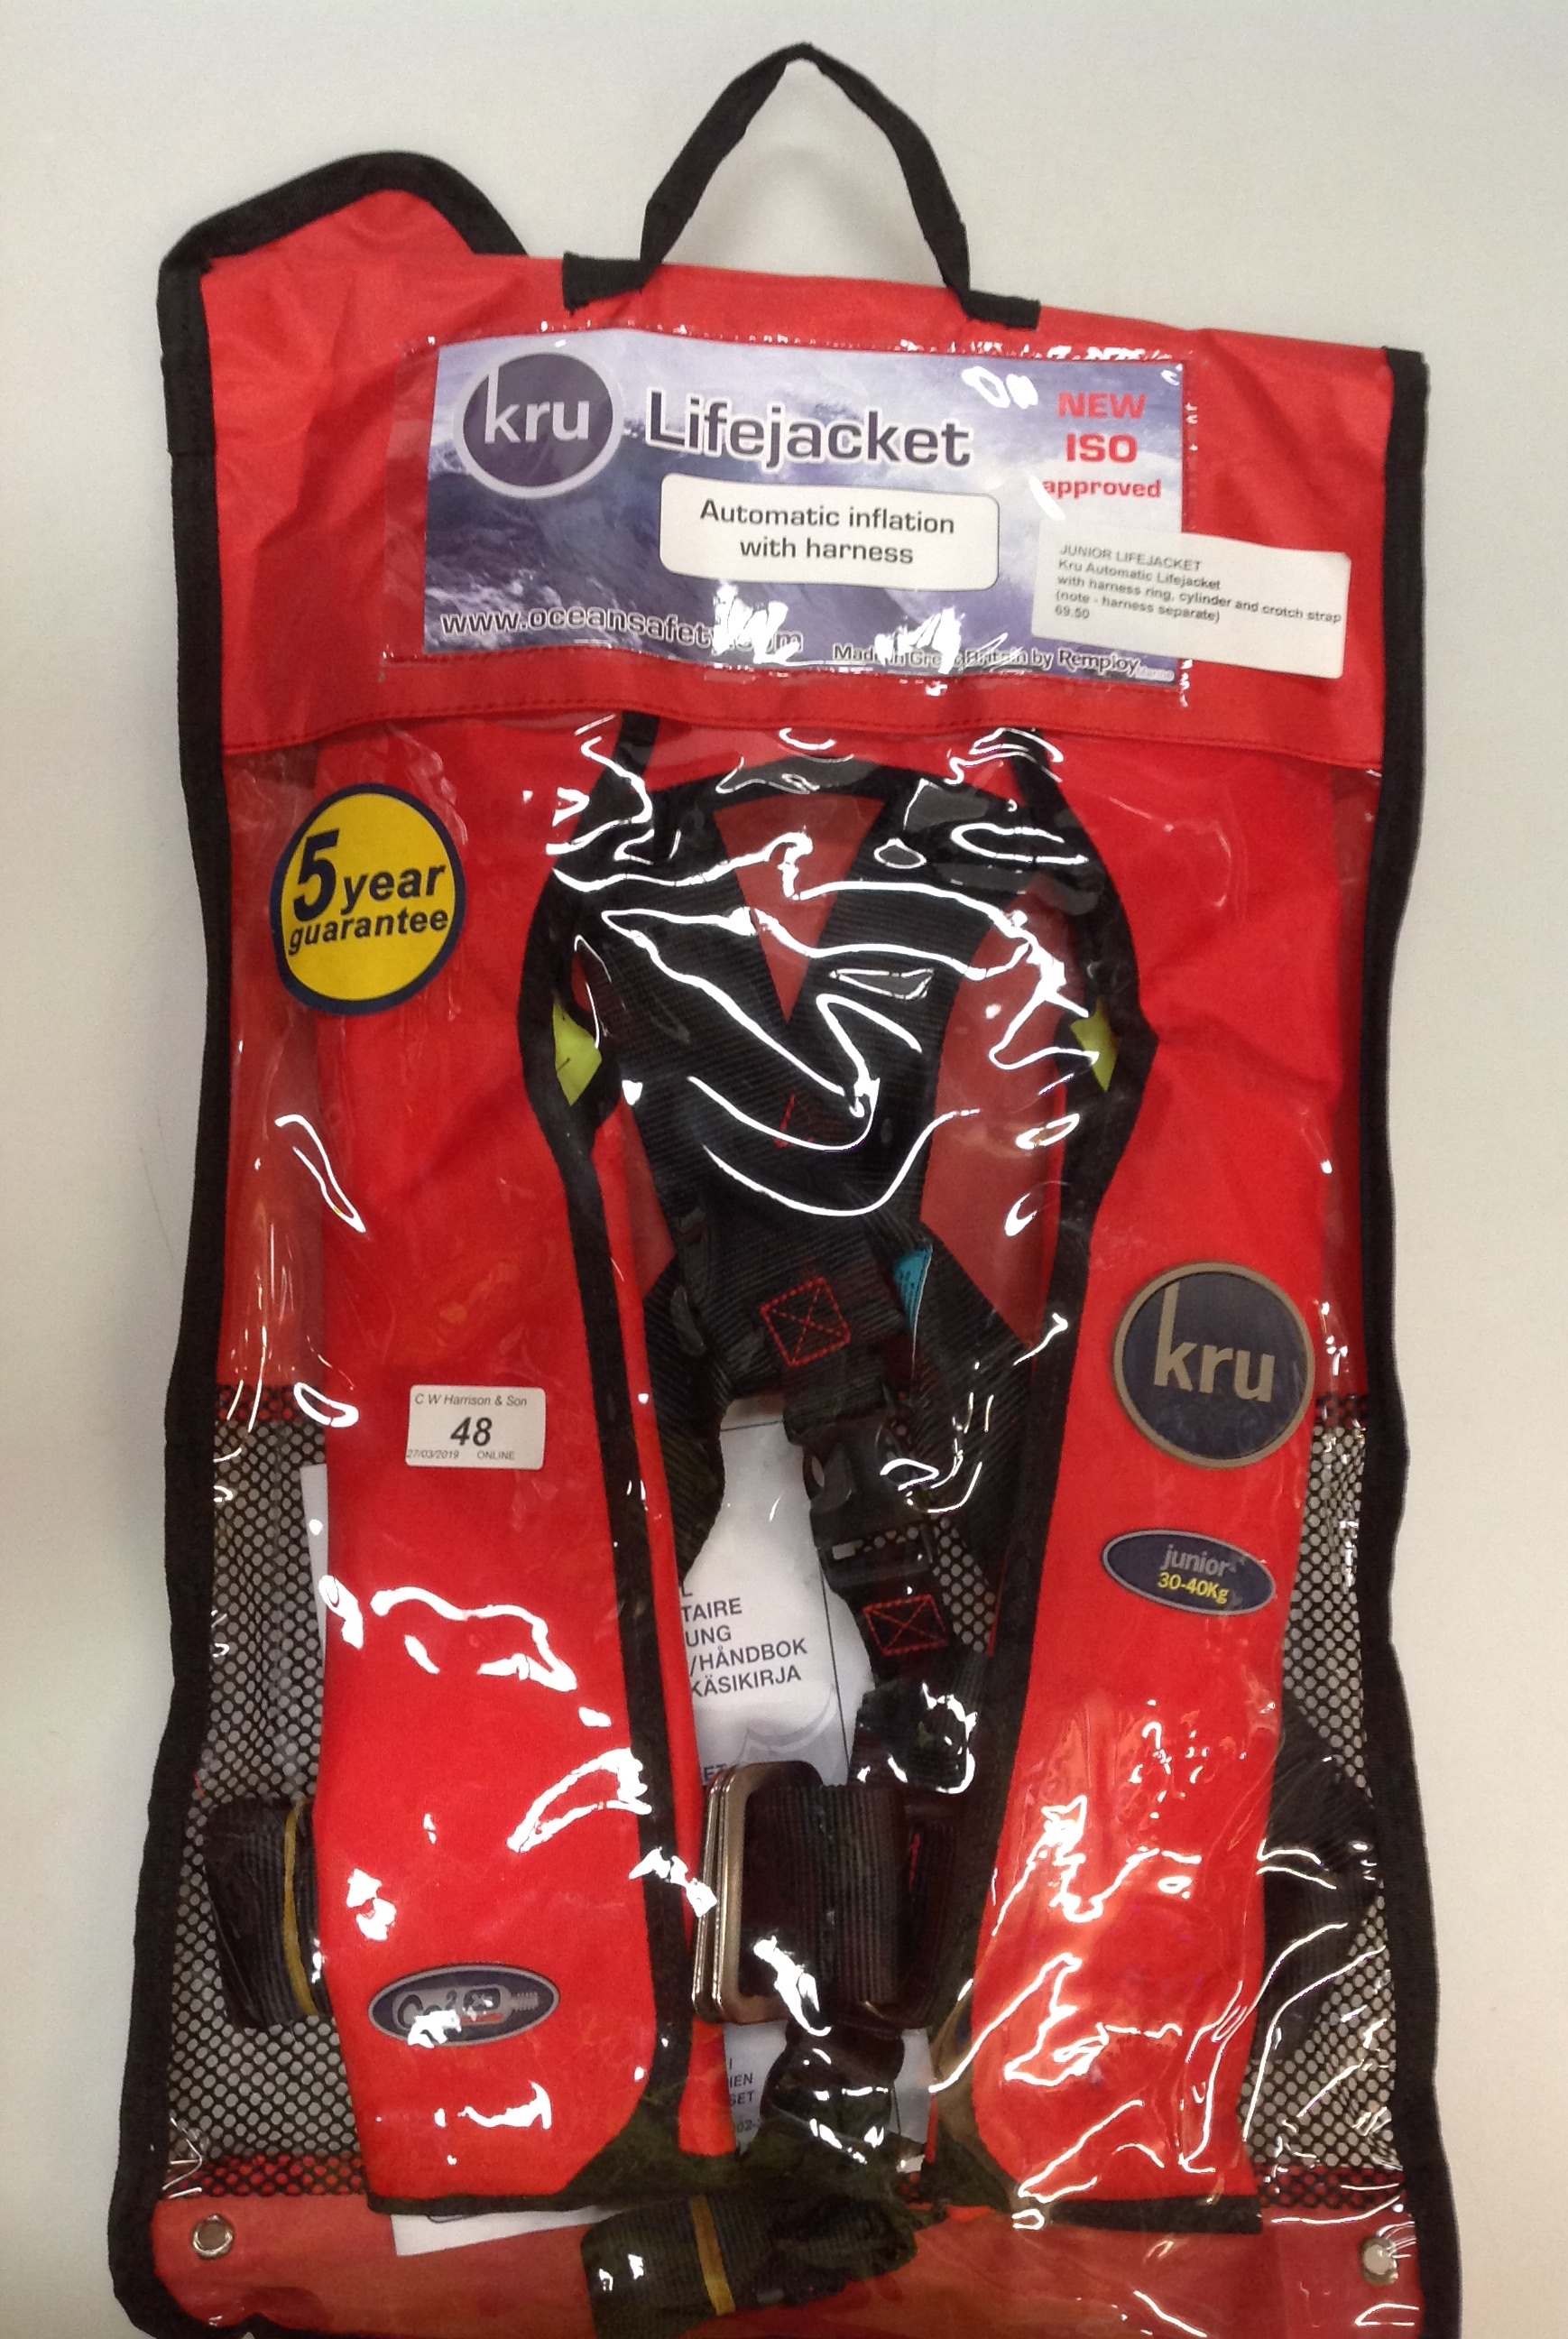 Lot 48 - KRU Commodore Junior automatic life jacket with harness